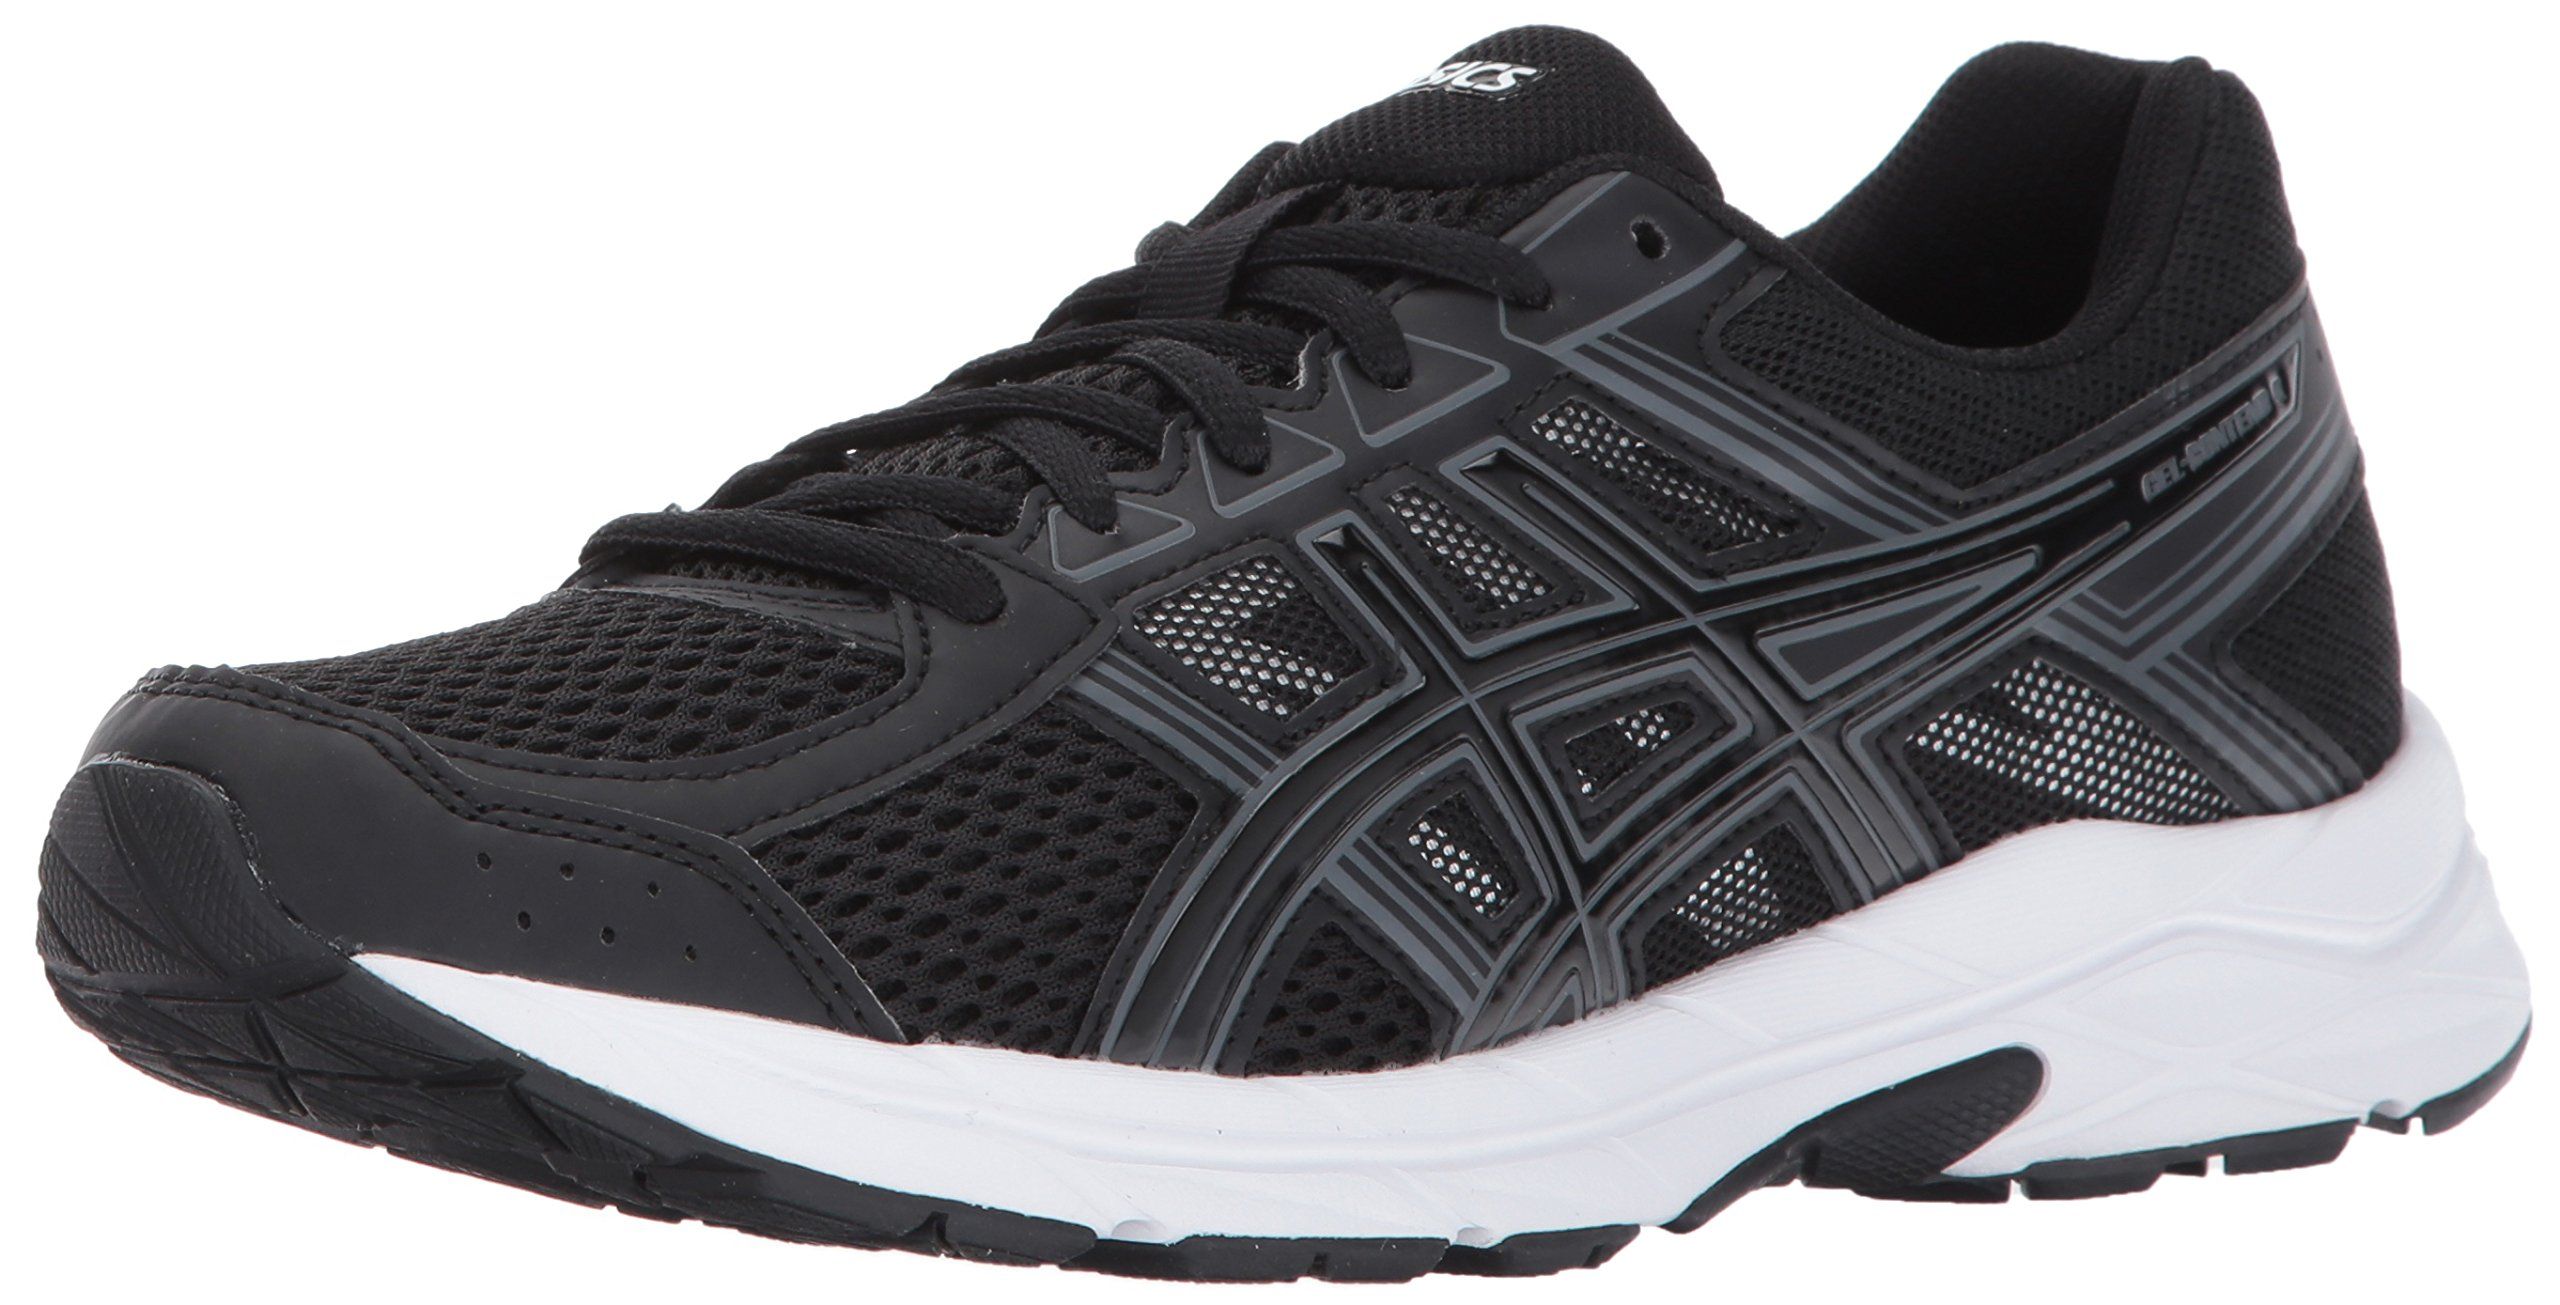 ASICS Womens Gel-Contend 4 Running Shoe Black/Carbon, 5.5 Medium US